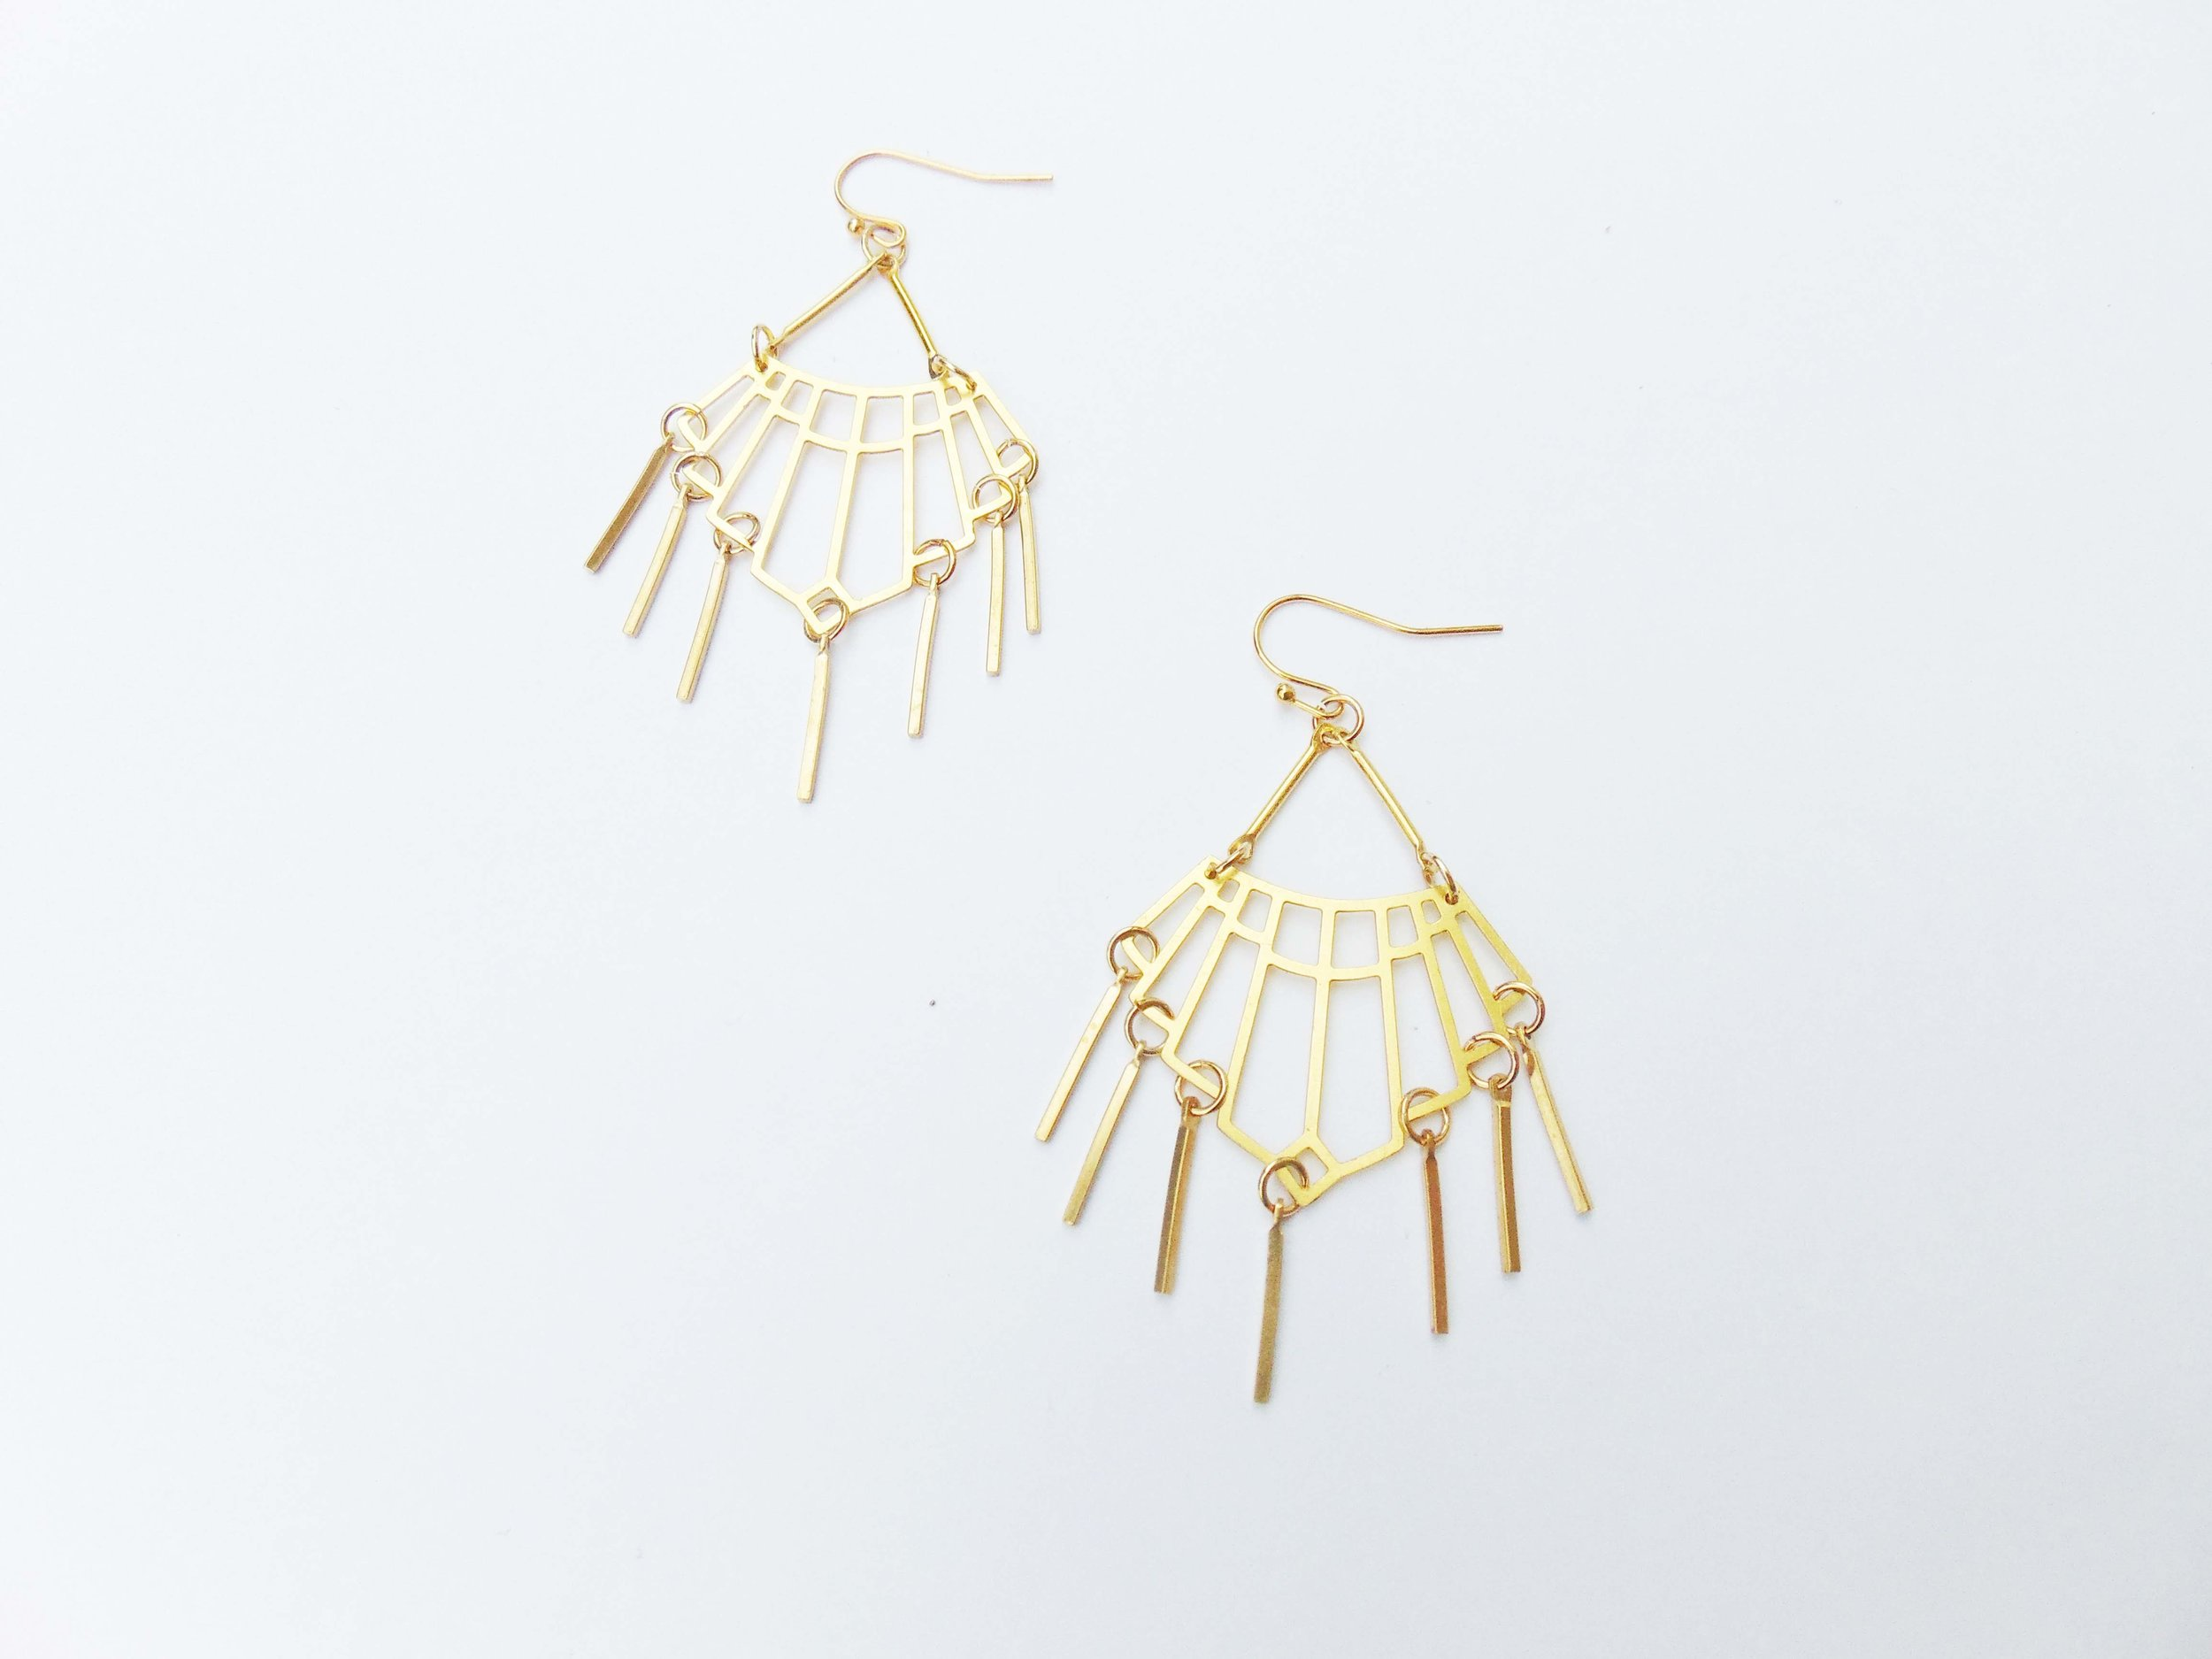 165c9855720a9c Gold Chandelier Earrings Modern Party Jewelry Womens Holiday Jewelry Dangle  Party Earrings Geometric Chandelier Earrings Dynamo